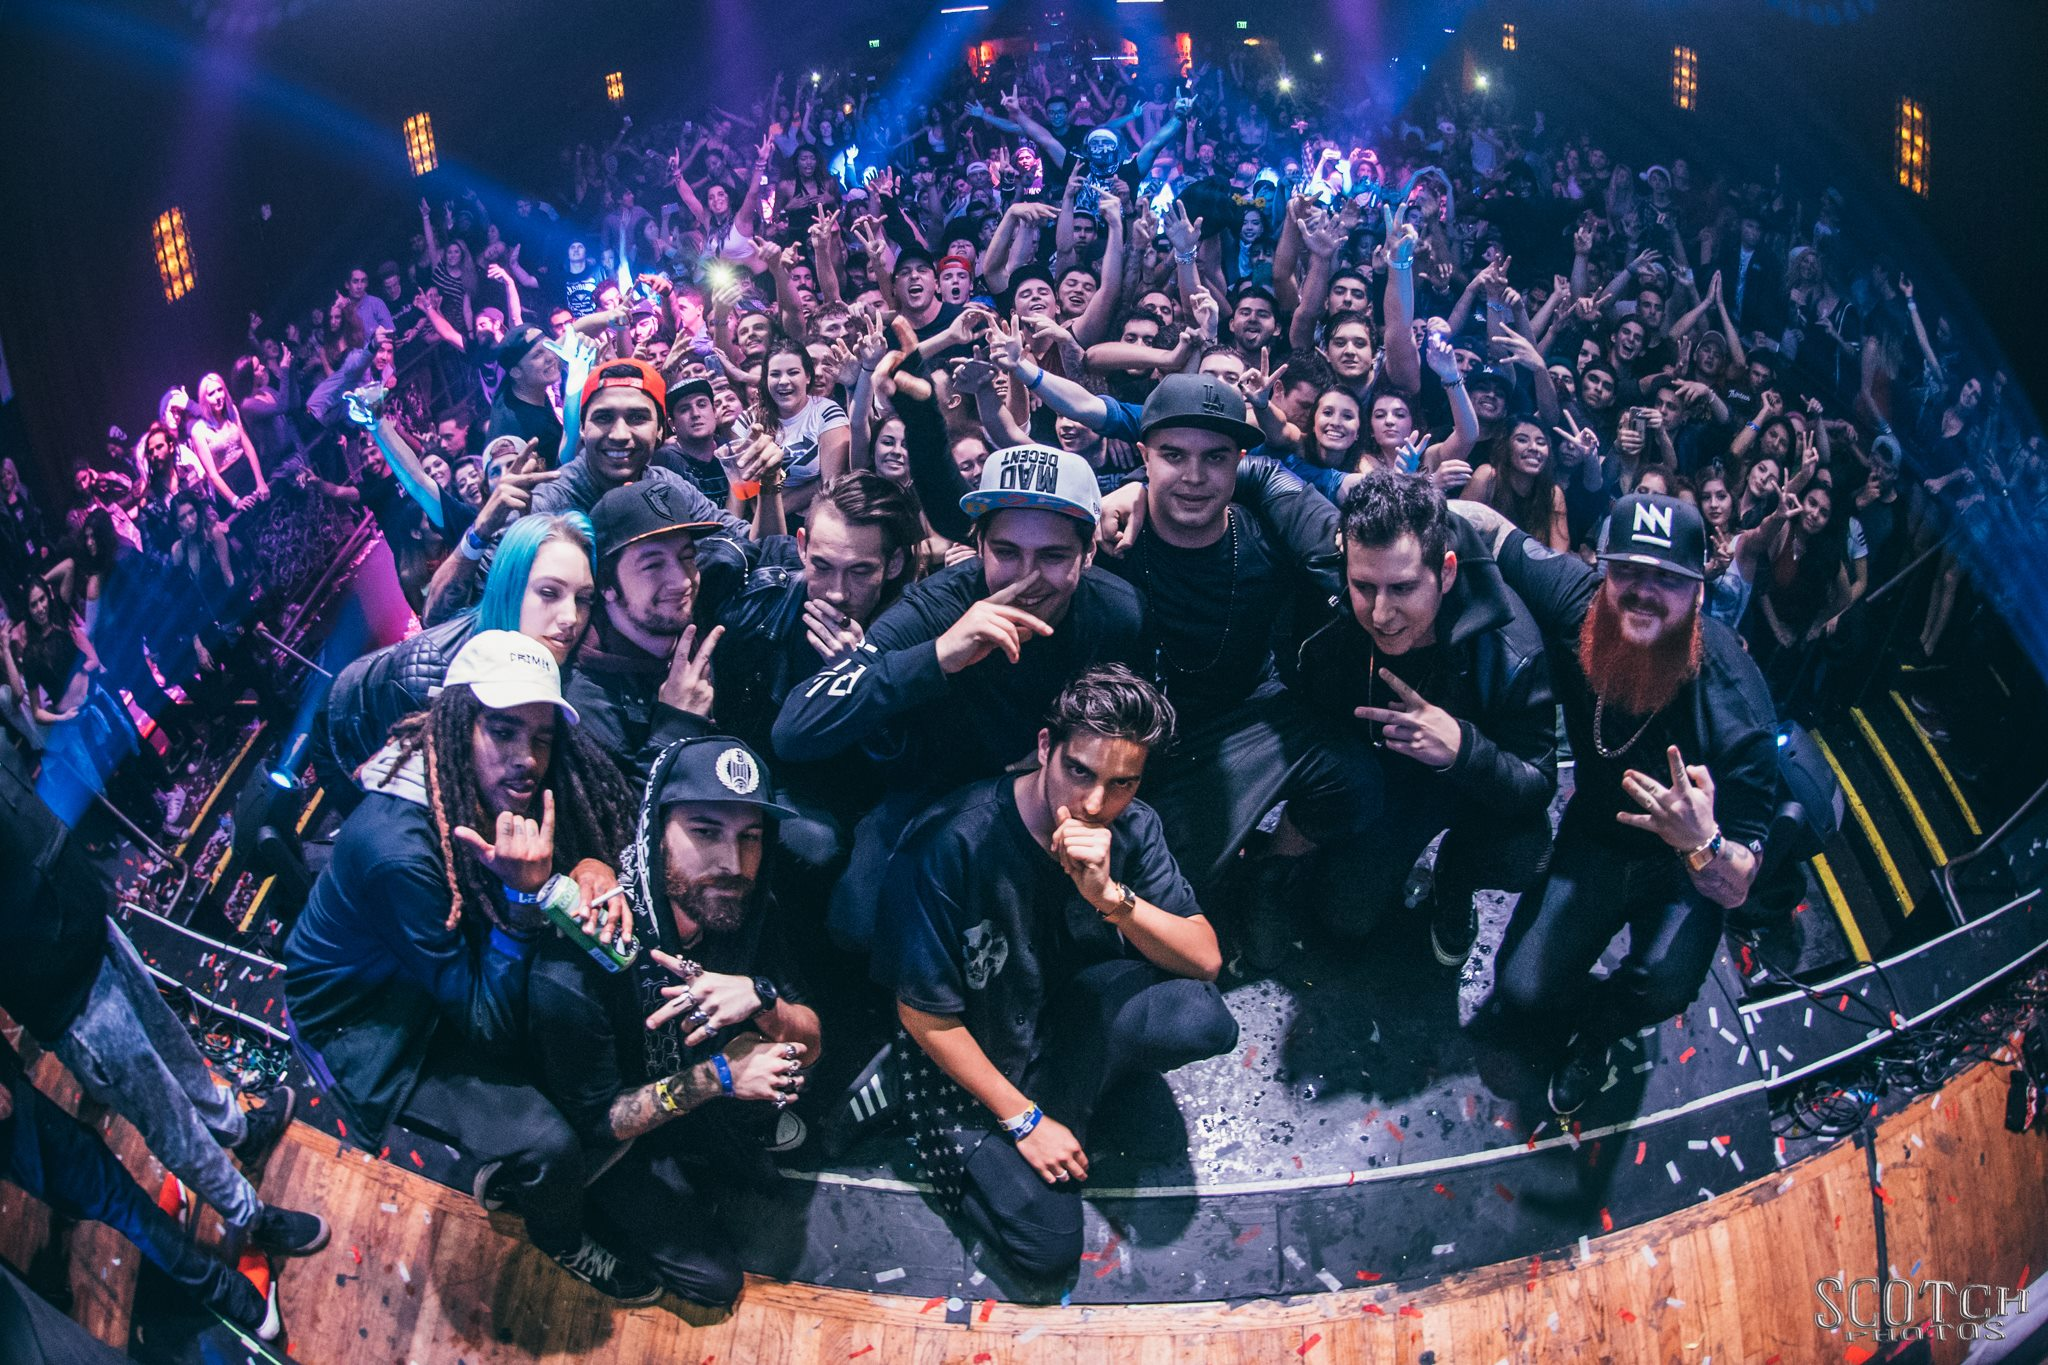 group photo datsik yost_scotch photos